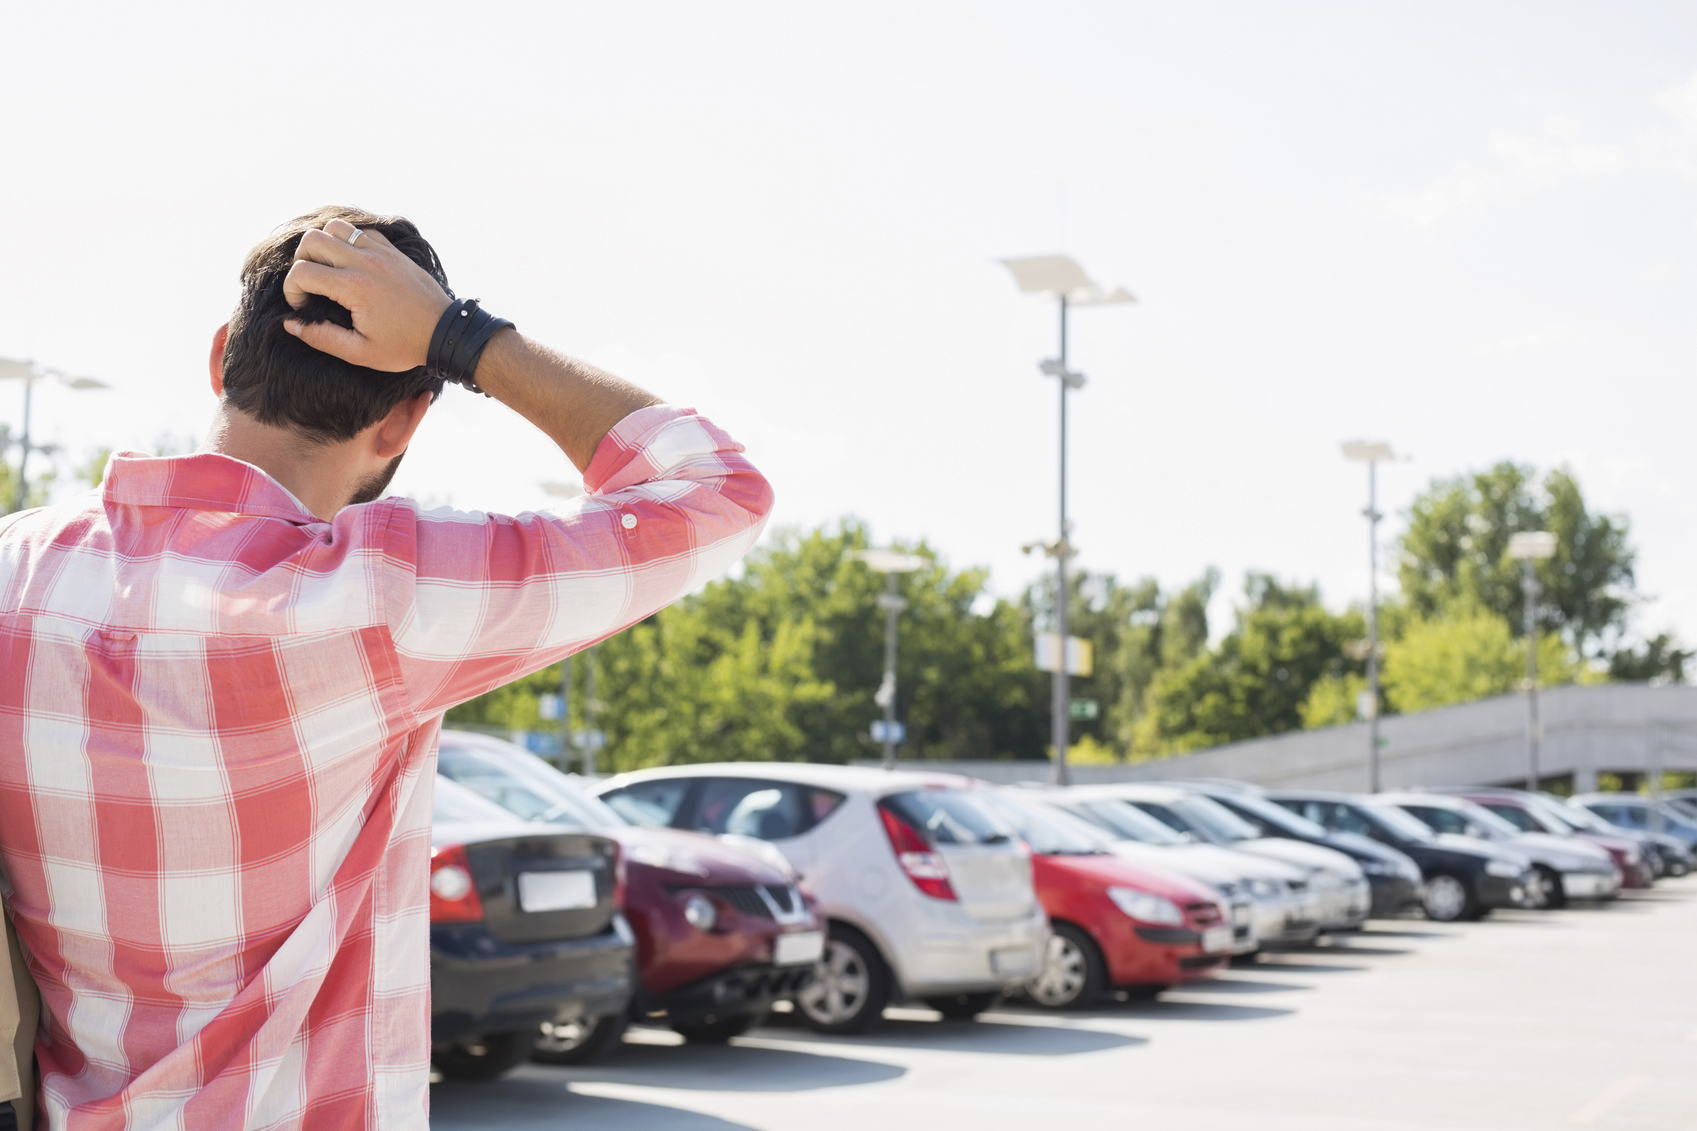 Are there cars in your lot? SEO Marketing brings the traffic.